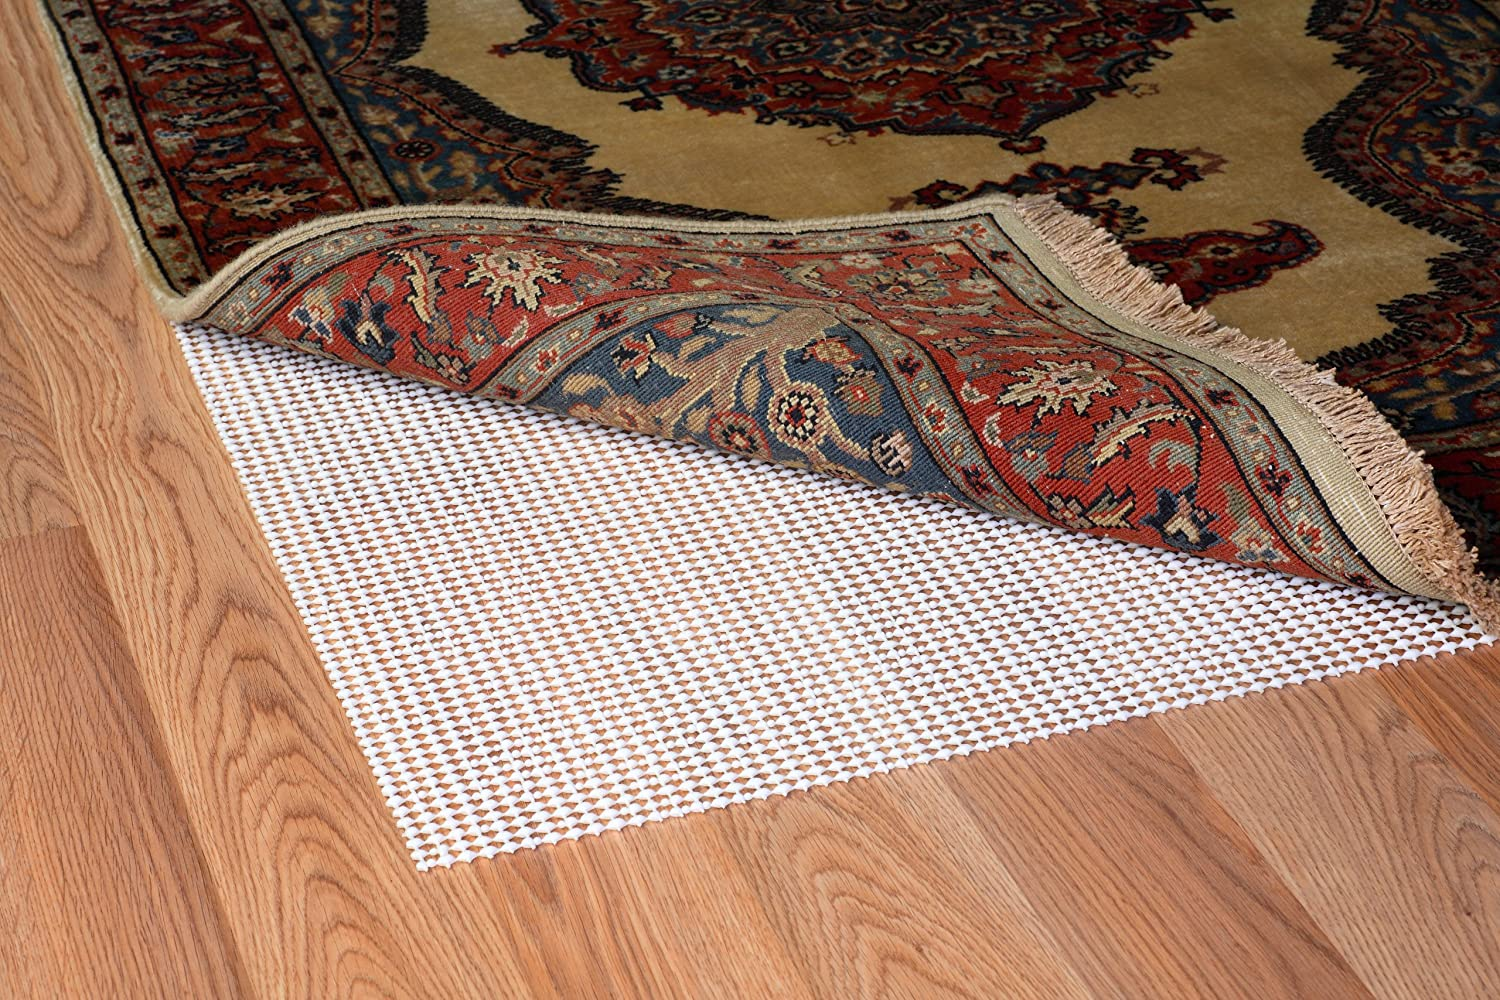 rug 2 x 4. amazon.com: ultra stop non-slip indoor rug pad, size: 2\u0027 x 4\u0027 pad: kitchen \u0026 dining 2 4 )